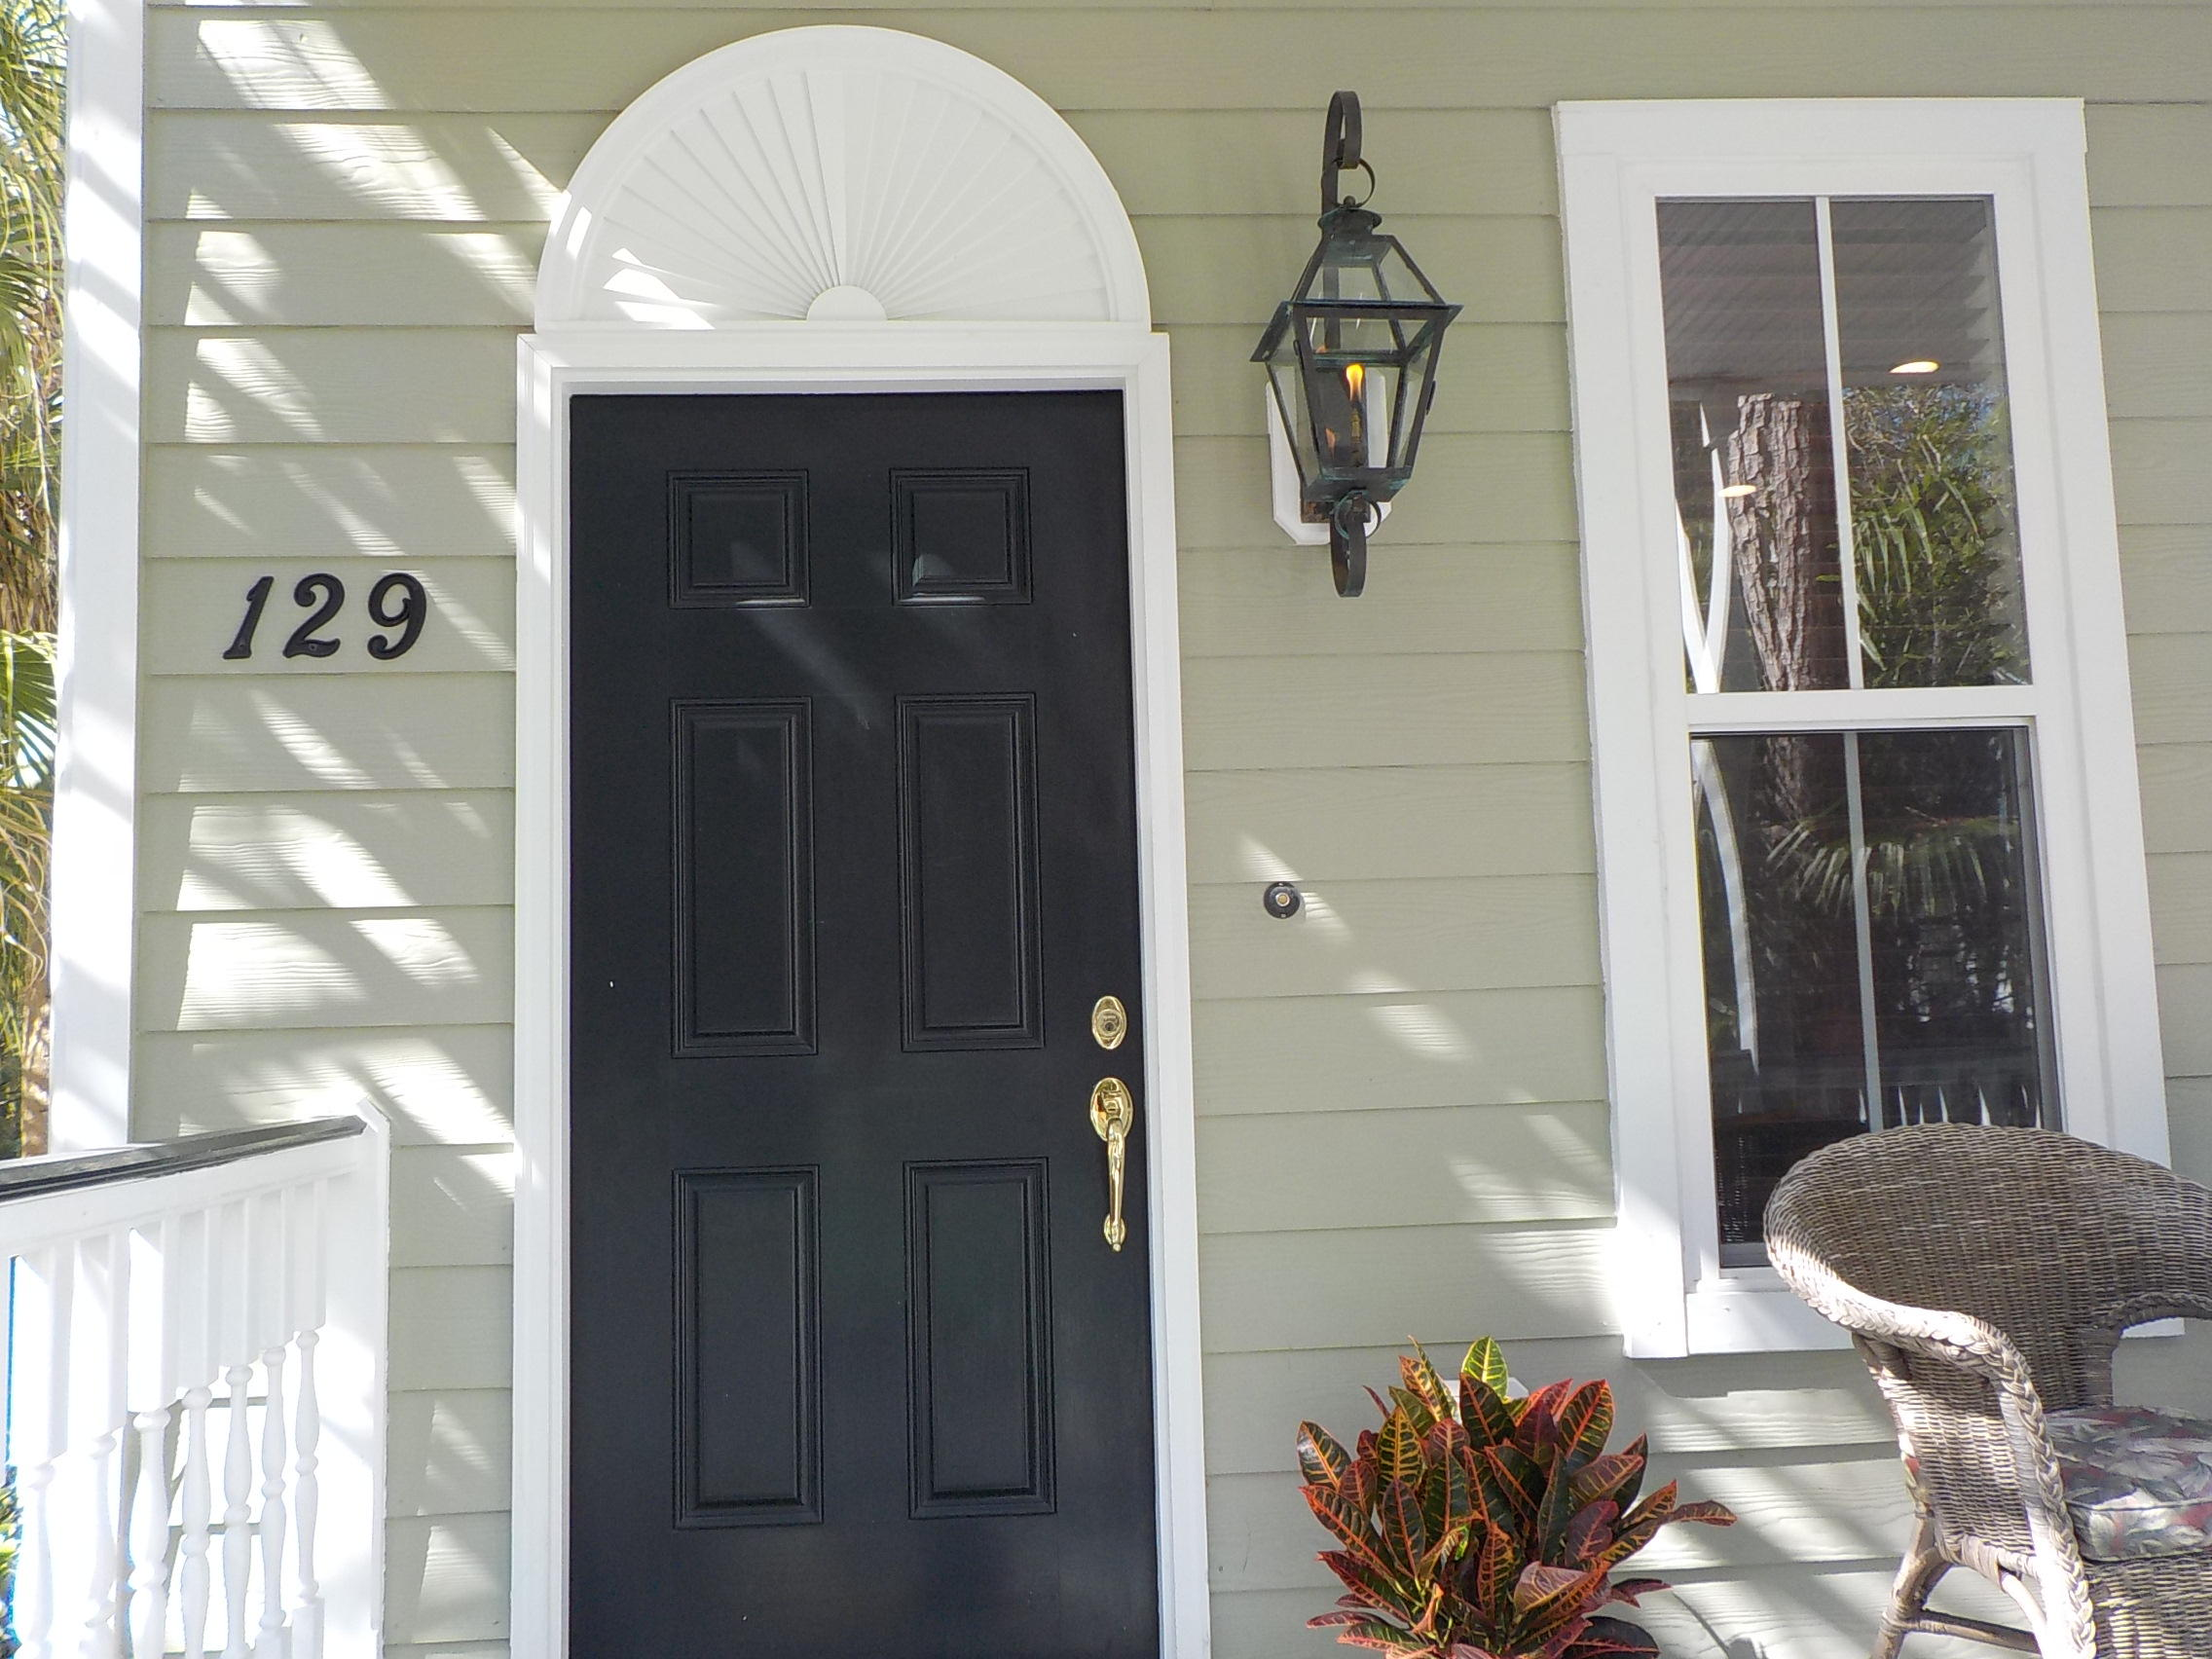 Cottages of Gahagan Homes For Sale - 129 White Pine, Summerville, SC - 2